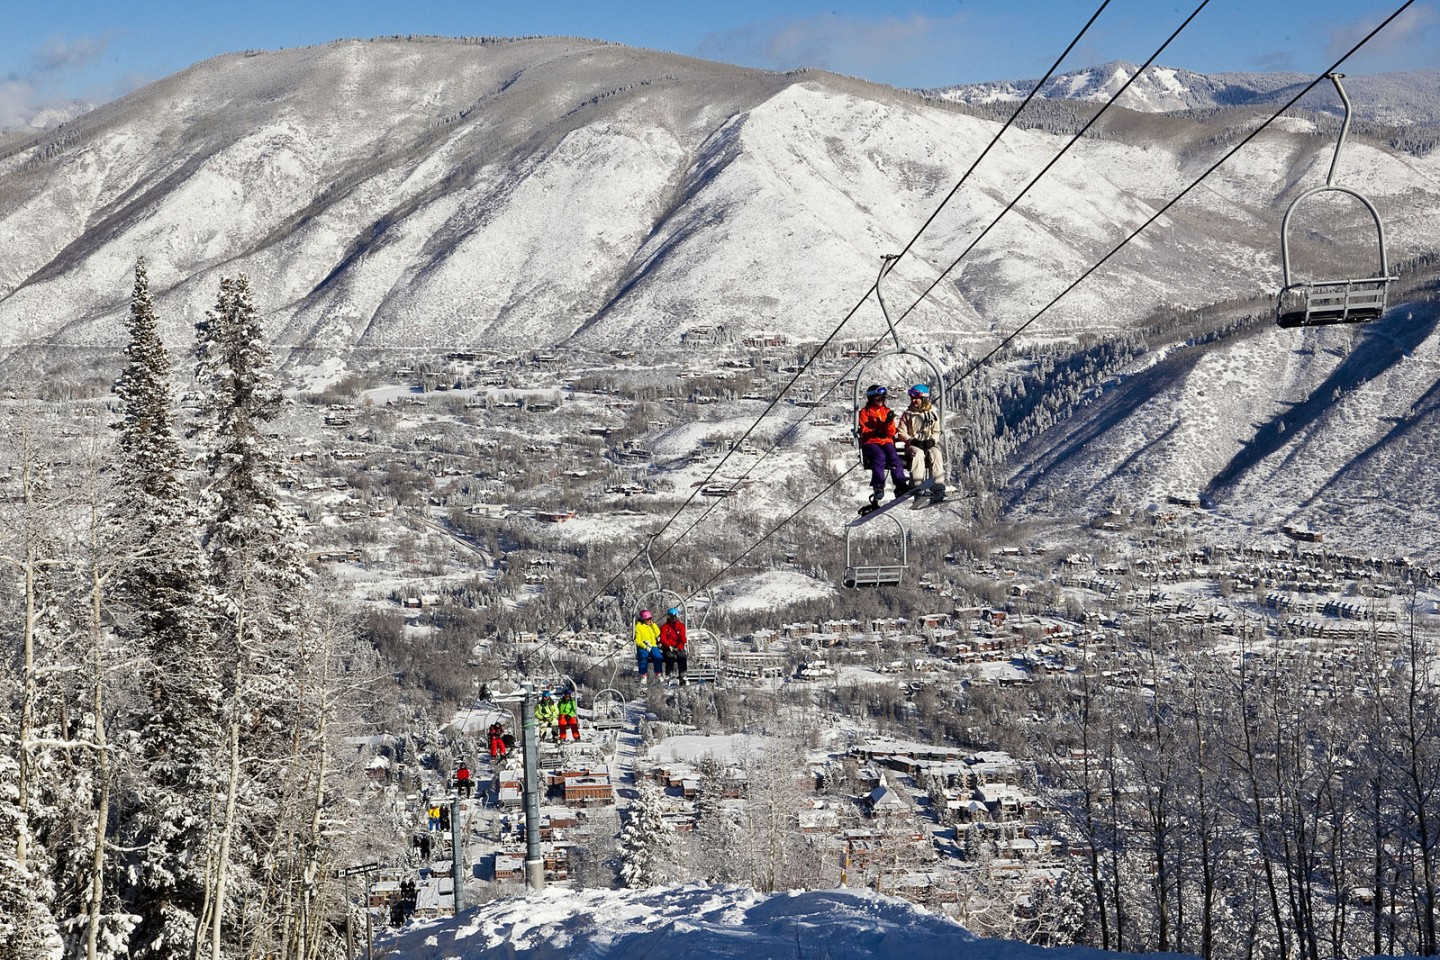 Lift_1A_on_Aspen_Mountain